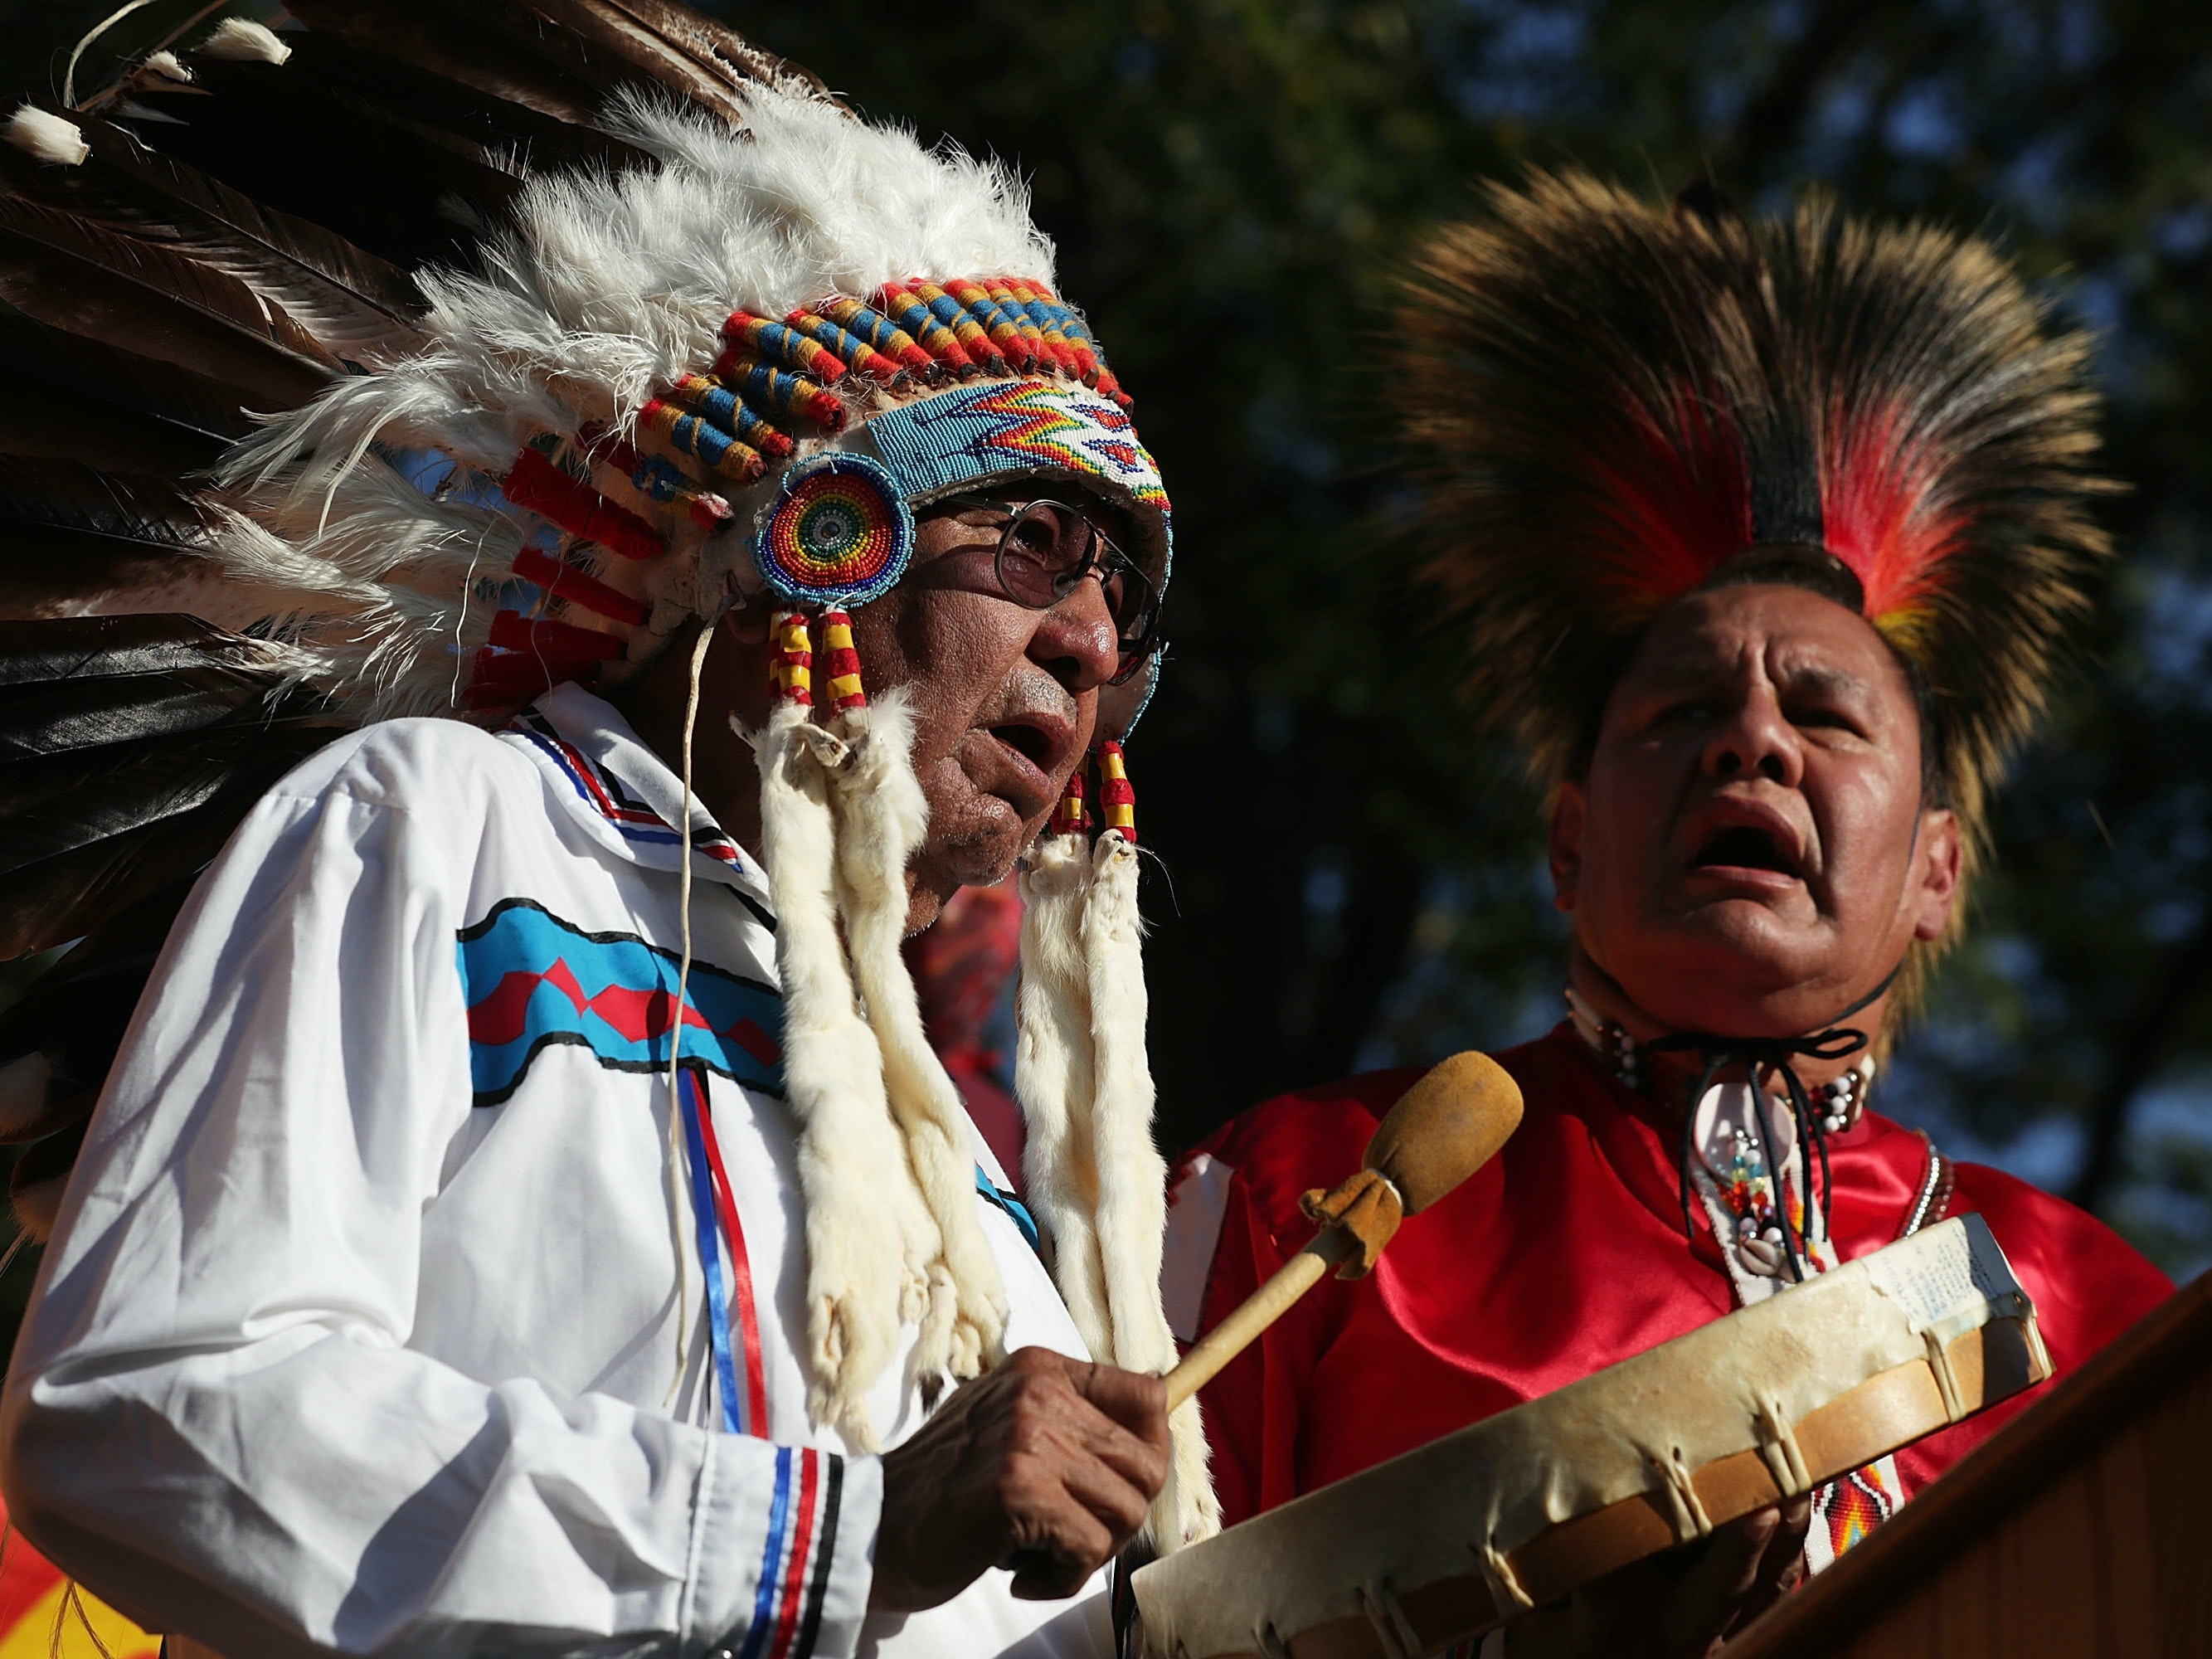 Dennis Zotigh (R) and his father Ralph Zotigh (L) of the Kiowa, Dakota, and Pueblo Tribes sing during a rally against the Dakota Access Pipeline this September in Washington, DC.